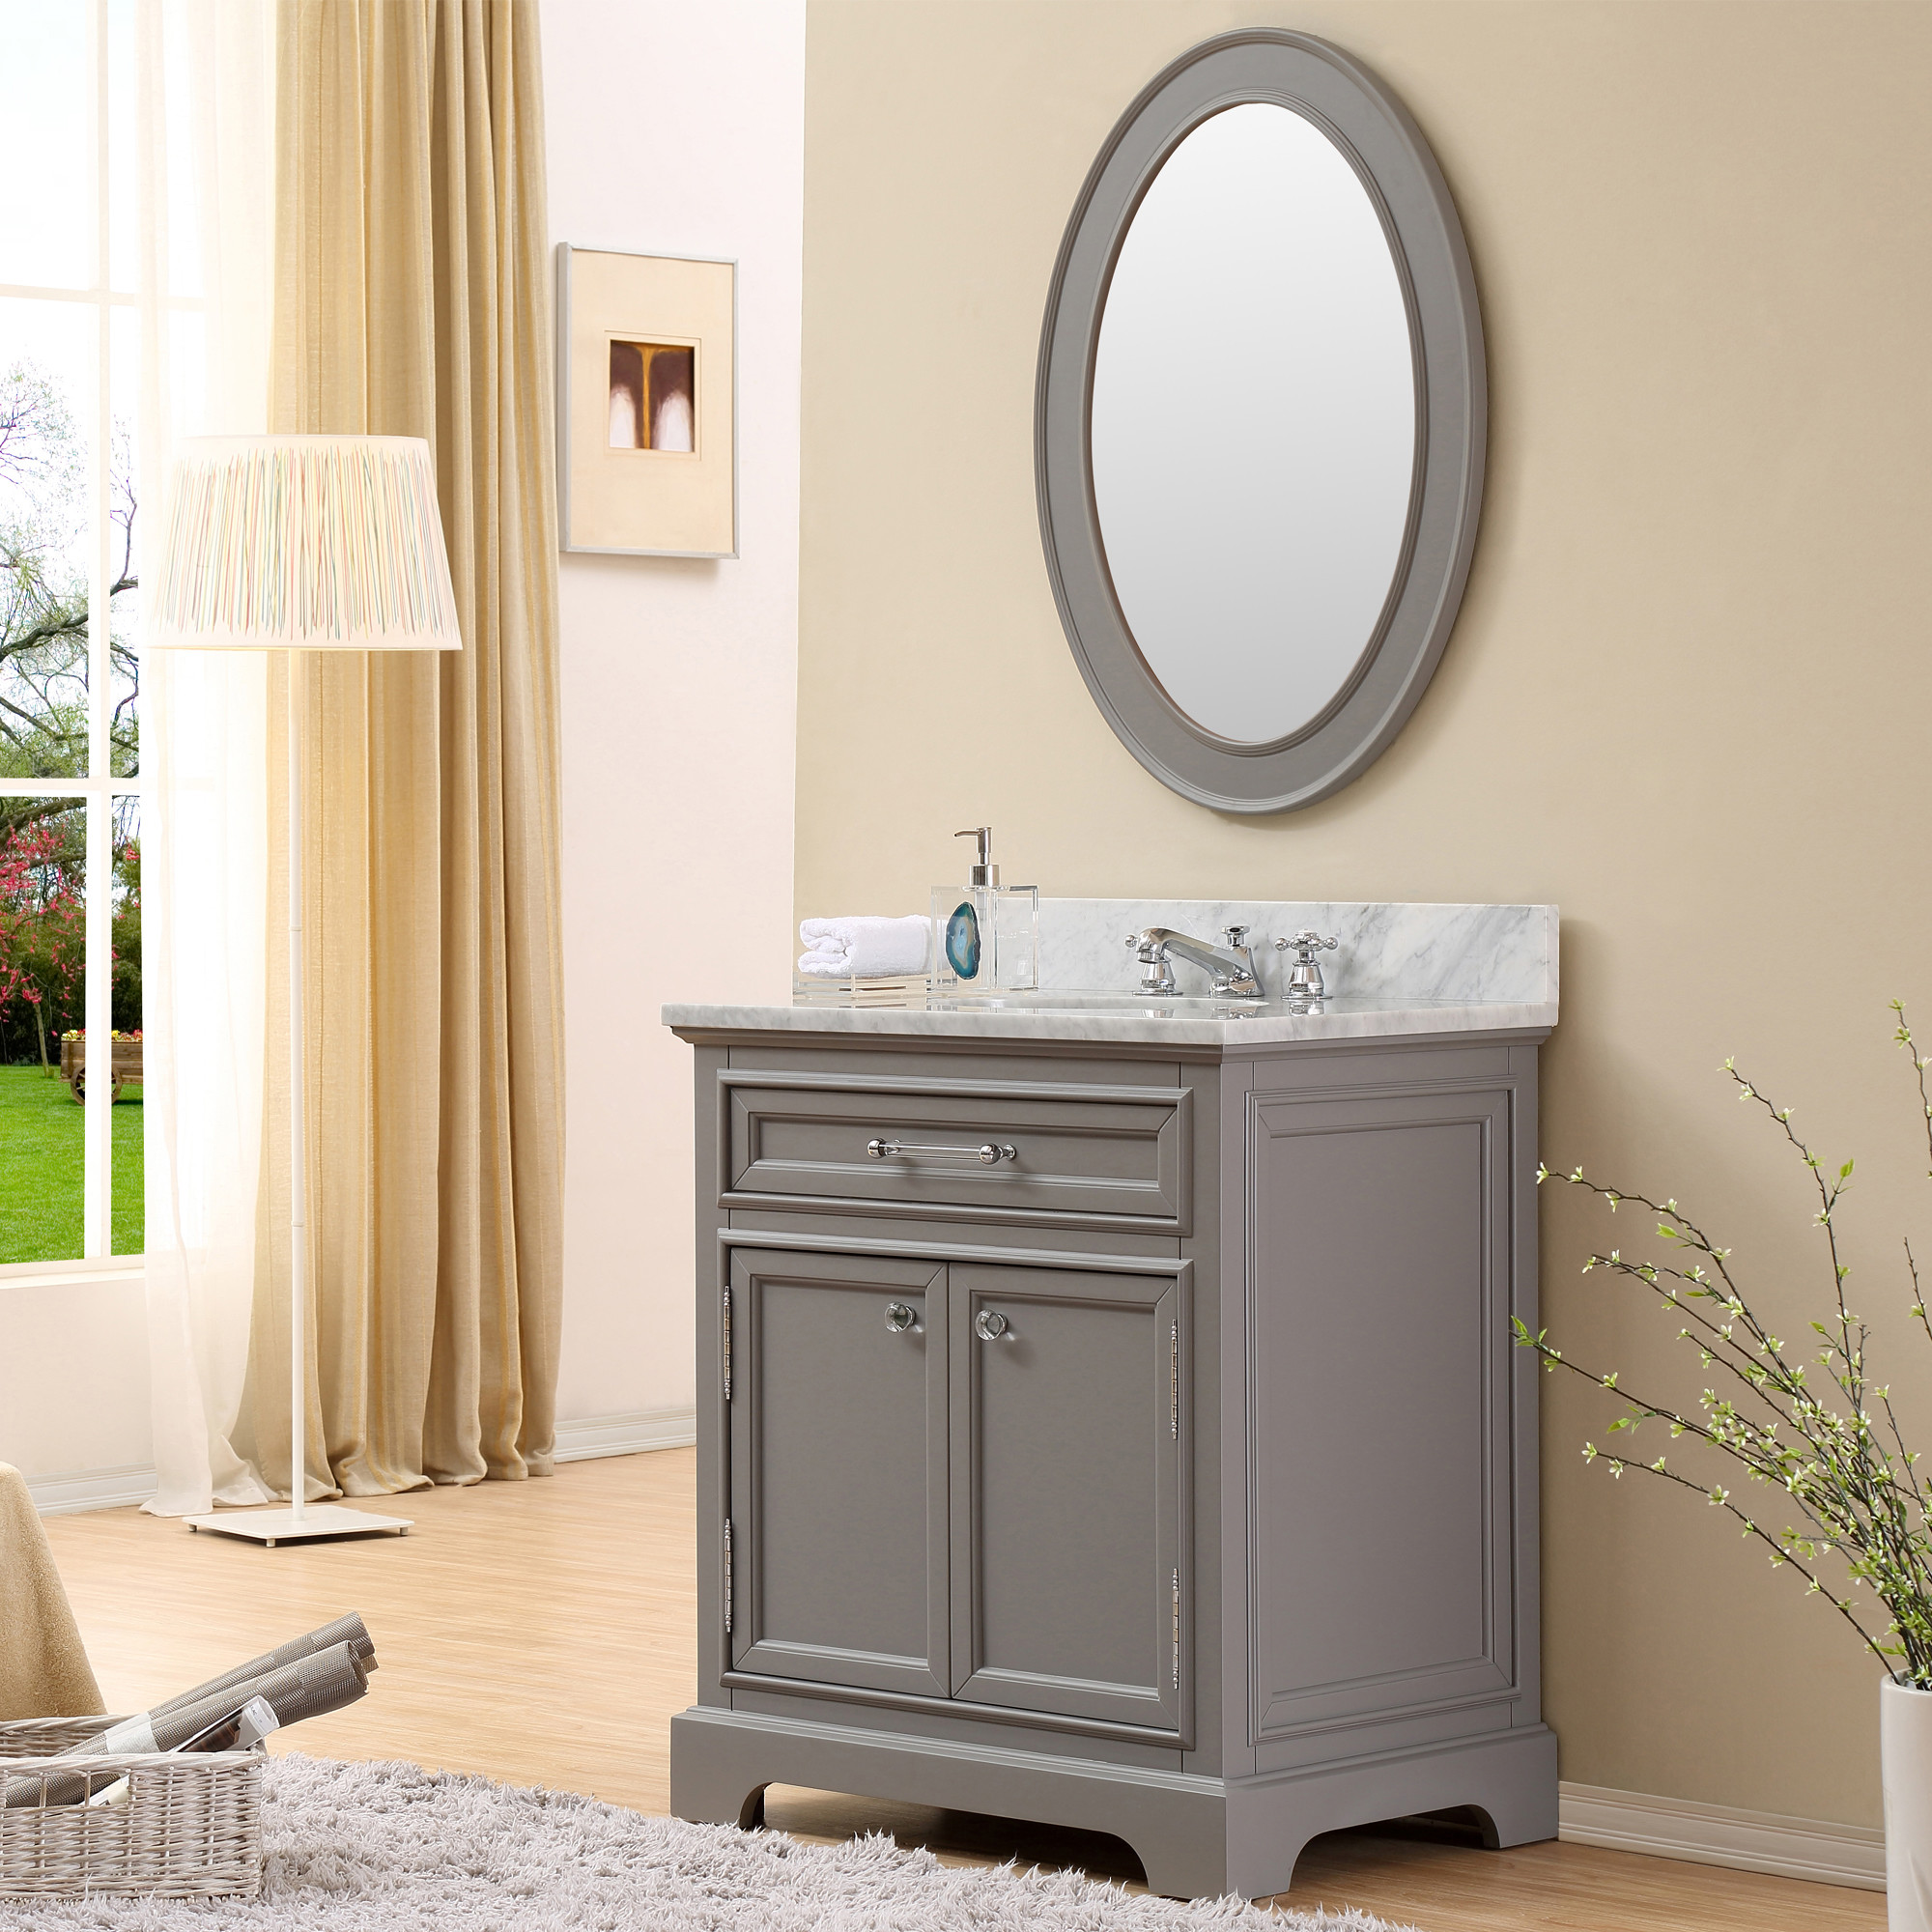 Inch Traditional Bathroom Vanity Gray Finish - Mirror size for 30 inch vanity